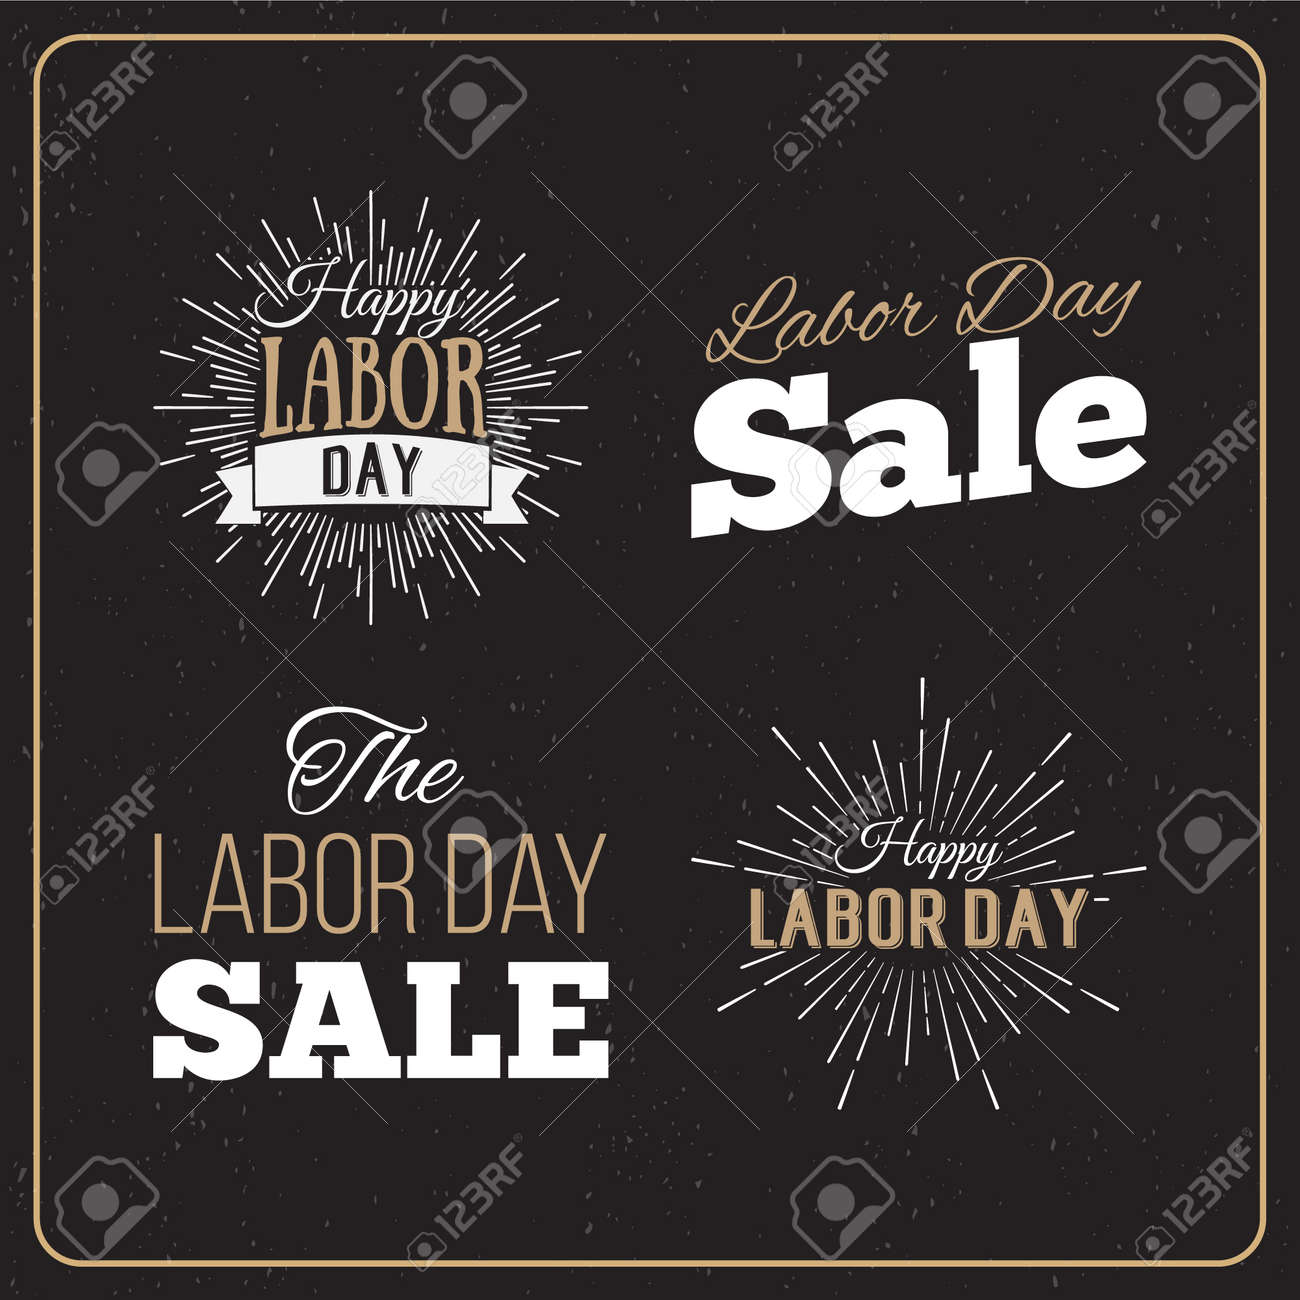 Vector Illustration Labor Day a national holiday of the United States. American Labor Day Sale designs set. A set of retro typographic logos. - 44206756